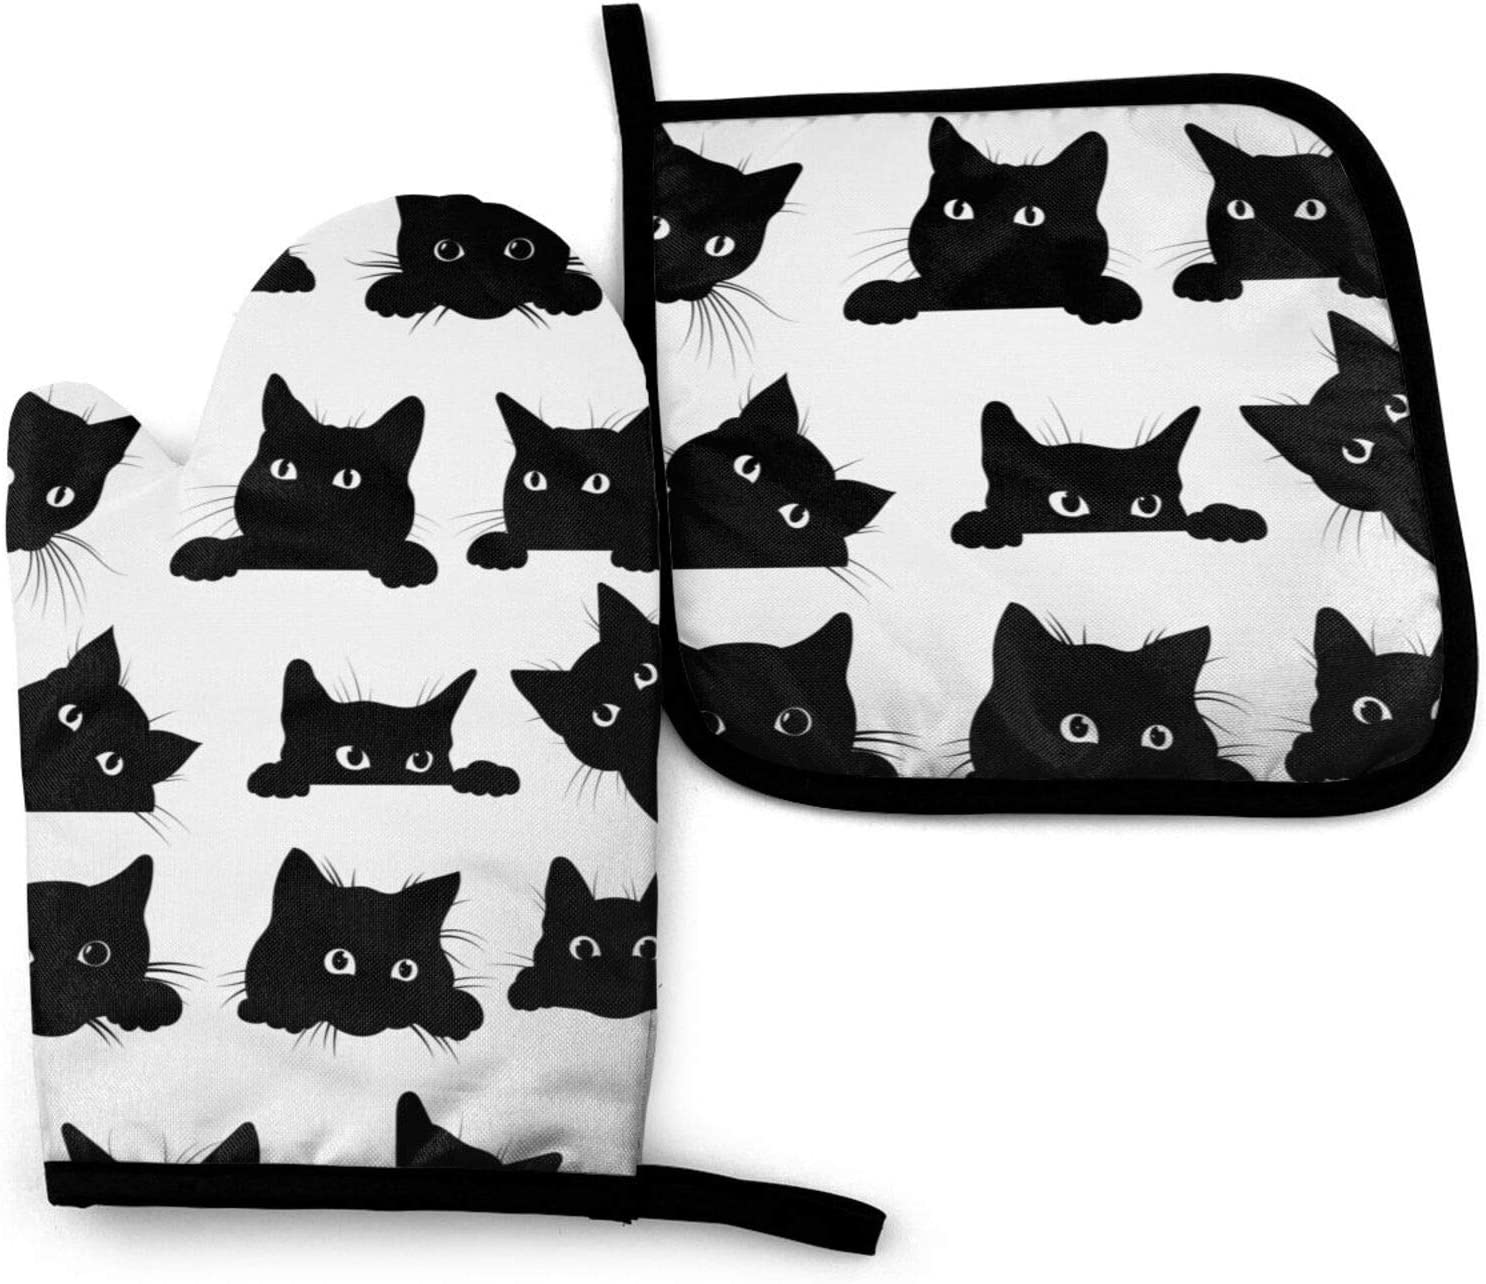 Black Cats Kitchen Oven Mitts and Pot Holders Sets of 2,Resistant Hot Pads ,Flexible Cooking Oven Gloves for Microwave BBQ Cooking Baking Grilling